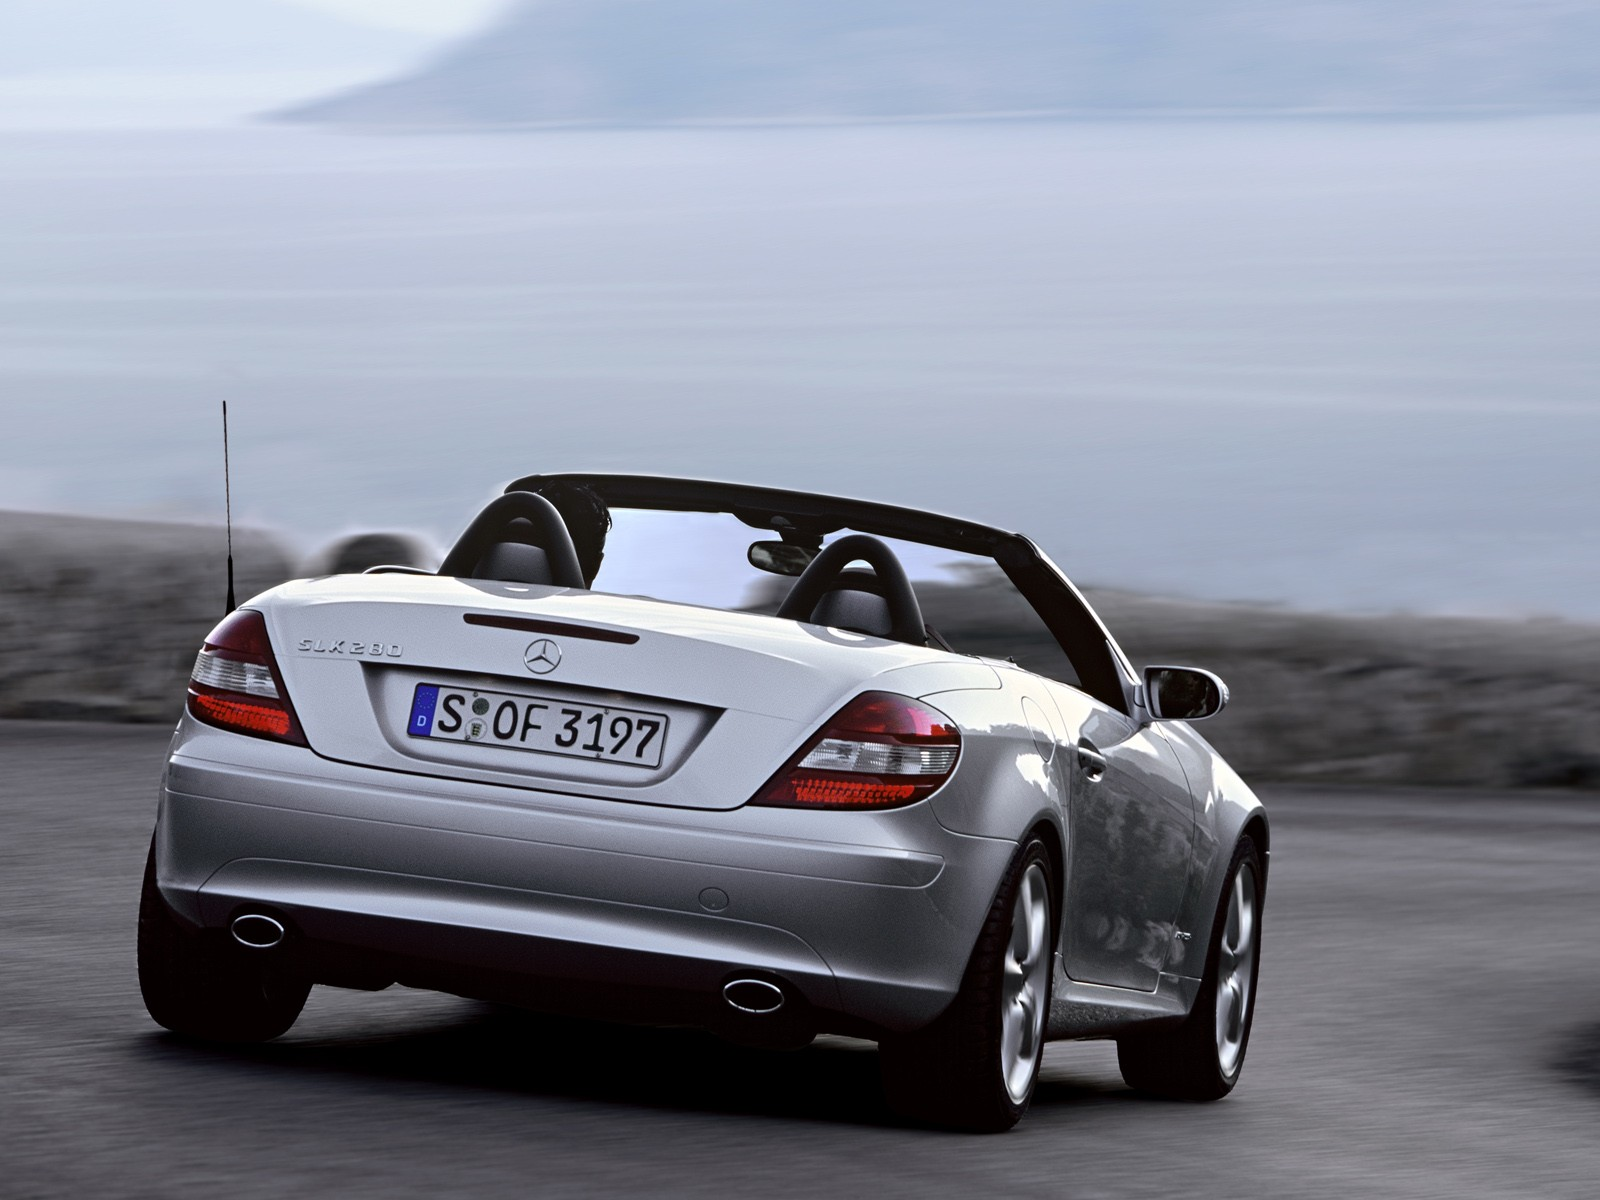 Mercedes-Benz SLK 280 photo 10